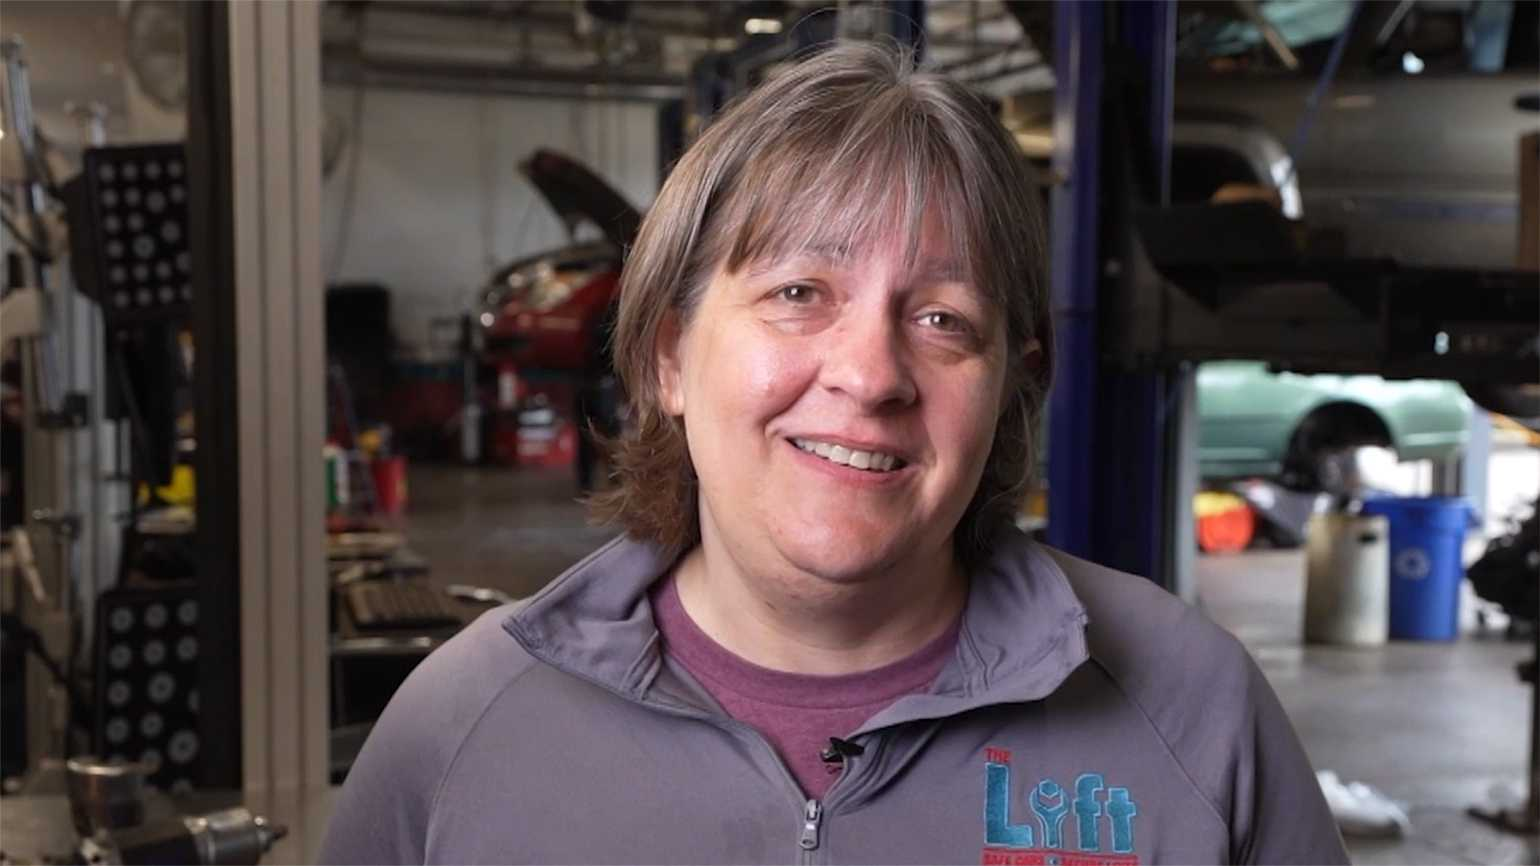 Cathy Heying, founder of Lift Garage;video by Matthew Gilson